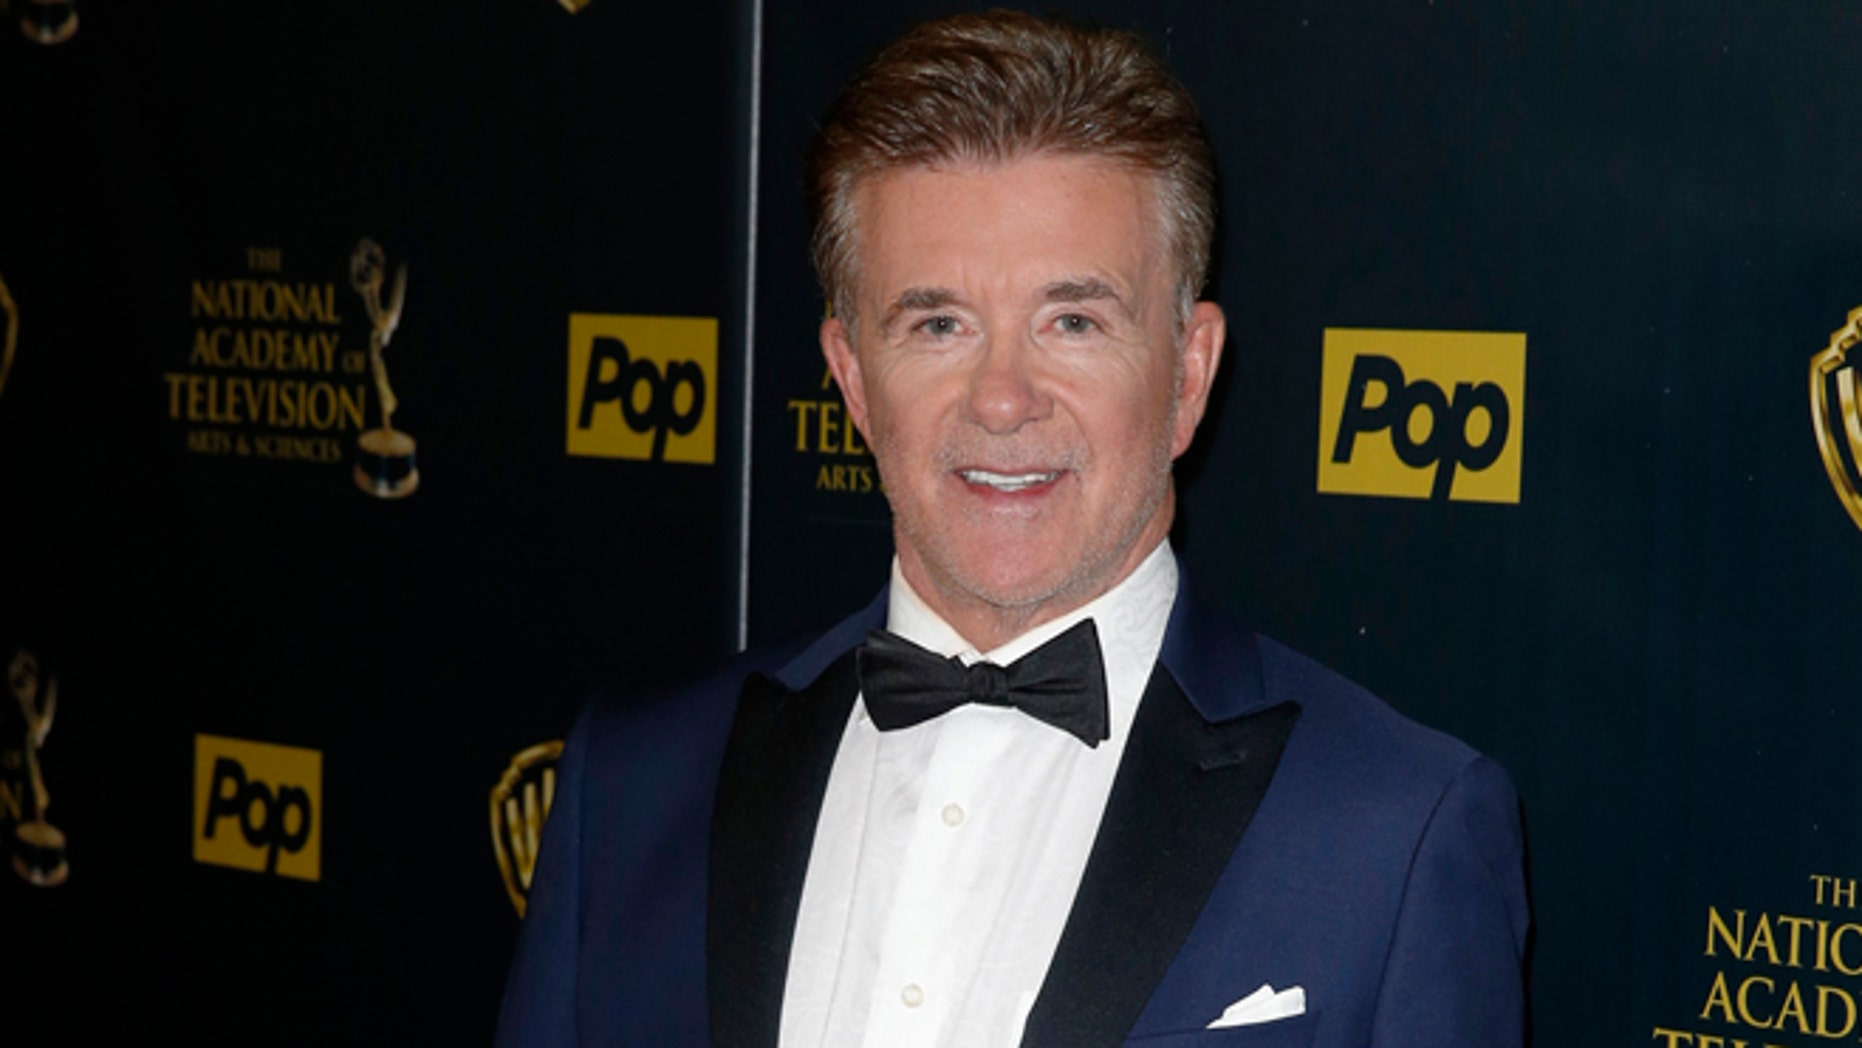 Actor Alan Thicke poses backstage at the 42nd Annual Daytime Emmy Awards in Burbank, California April 26, 2015.  REUTERS/Patrick T. Fallon - RTX1AE3D